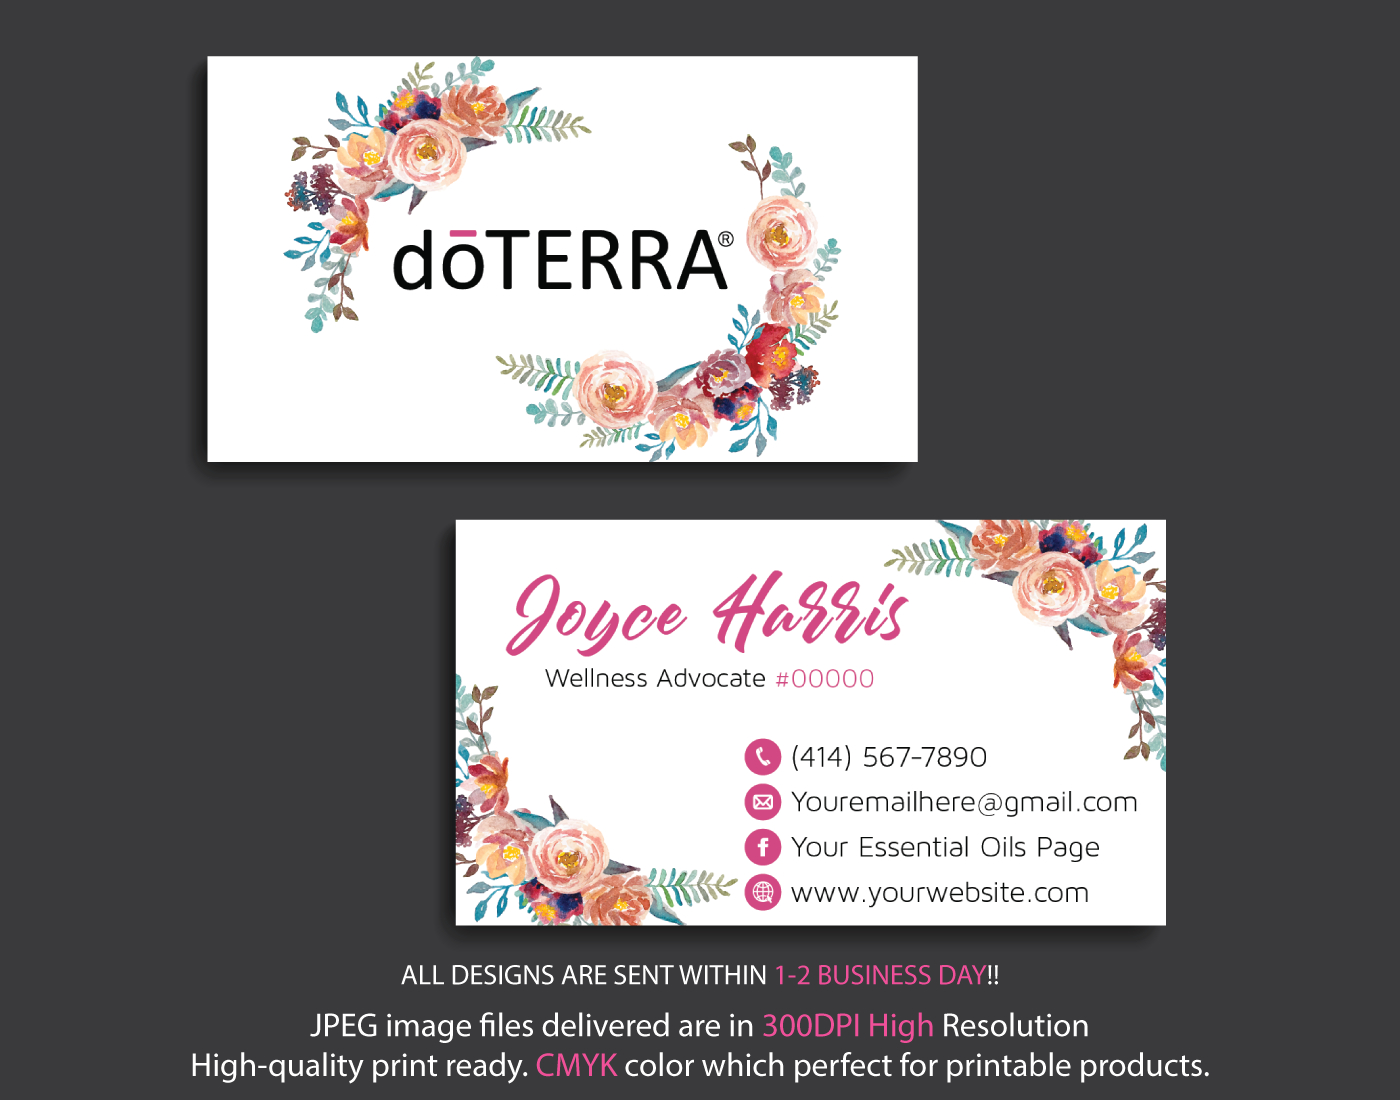 Personalized Doterra Business Card, Doterra Business Cards, Essential Oil  Business Card, Digital File Card, Dt15 - Free Printable Doterra Sample Cards